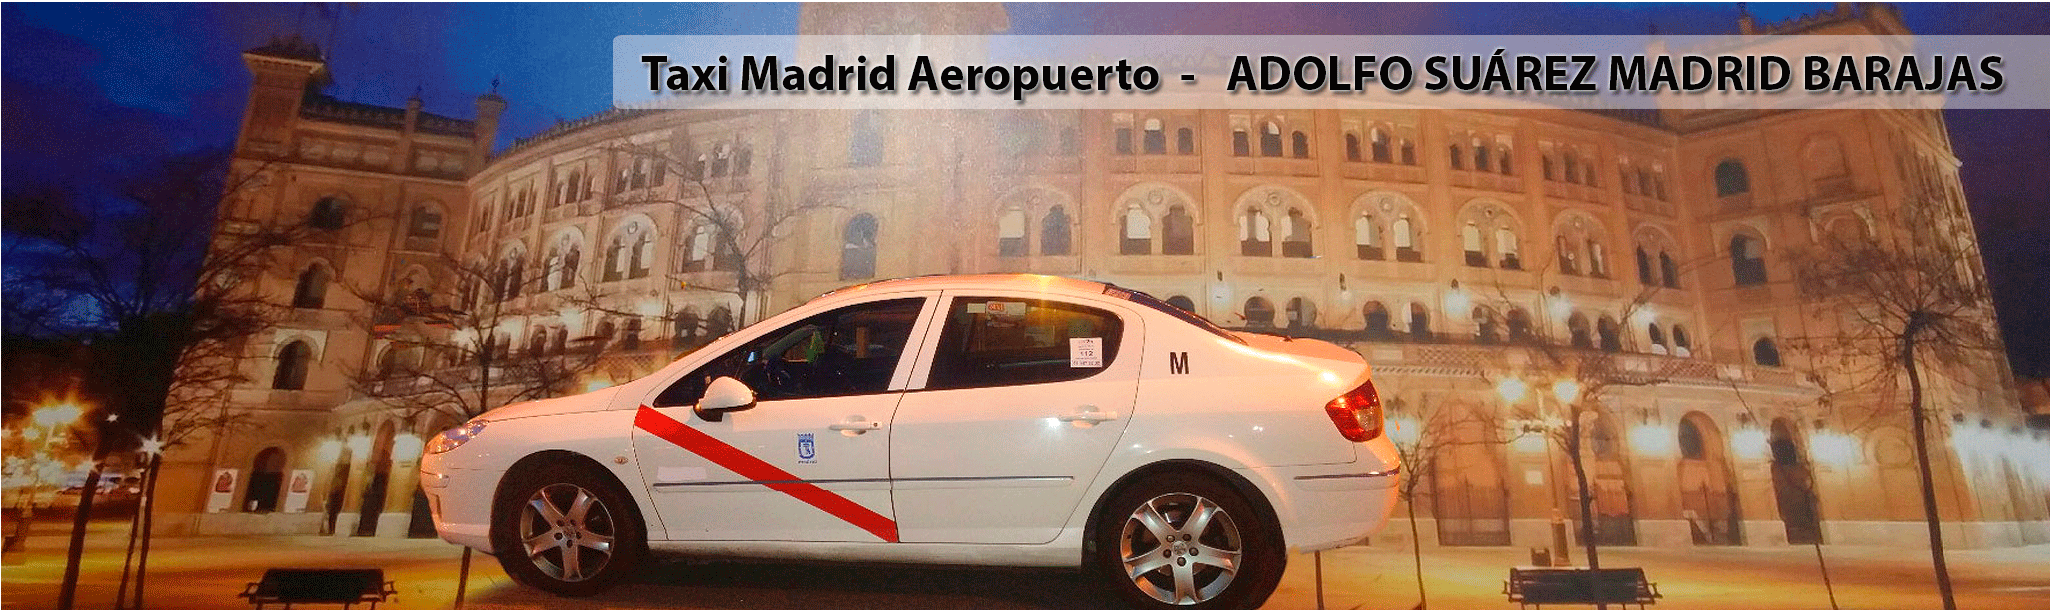 Transporte en Taxi Madrid